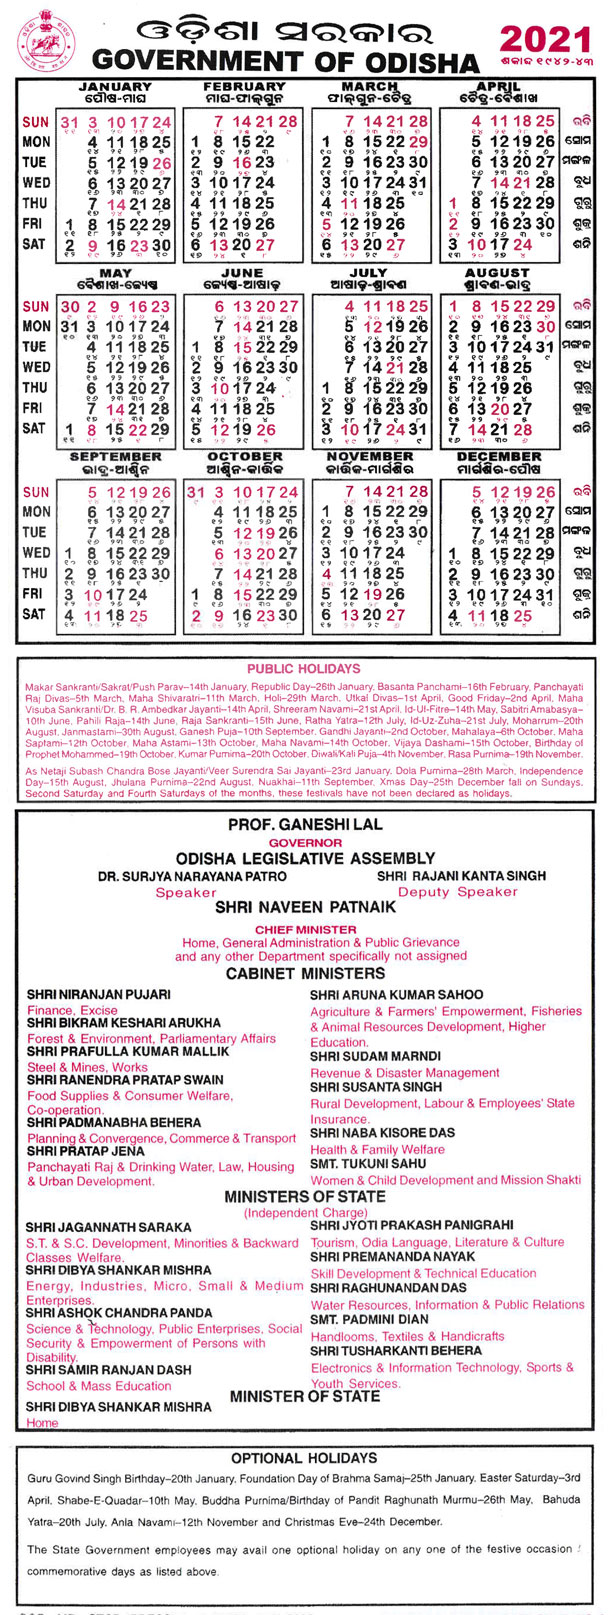 Official Odisha State Government Calendar 2021 PDF Free Download